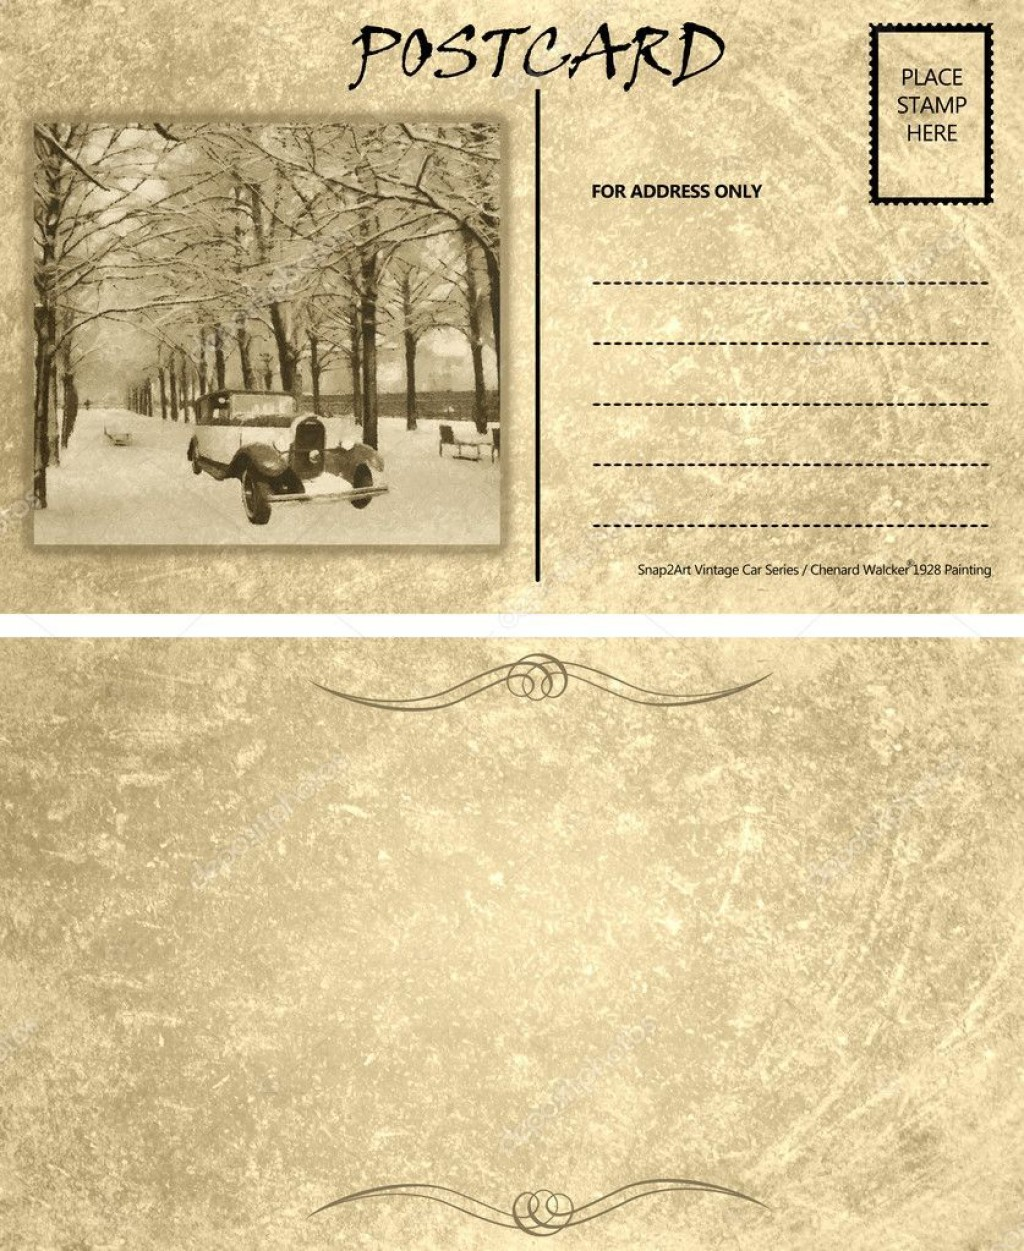 007 Rare Postcard Template Front And Back Design  Free WordLarge